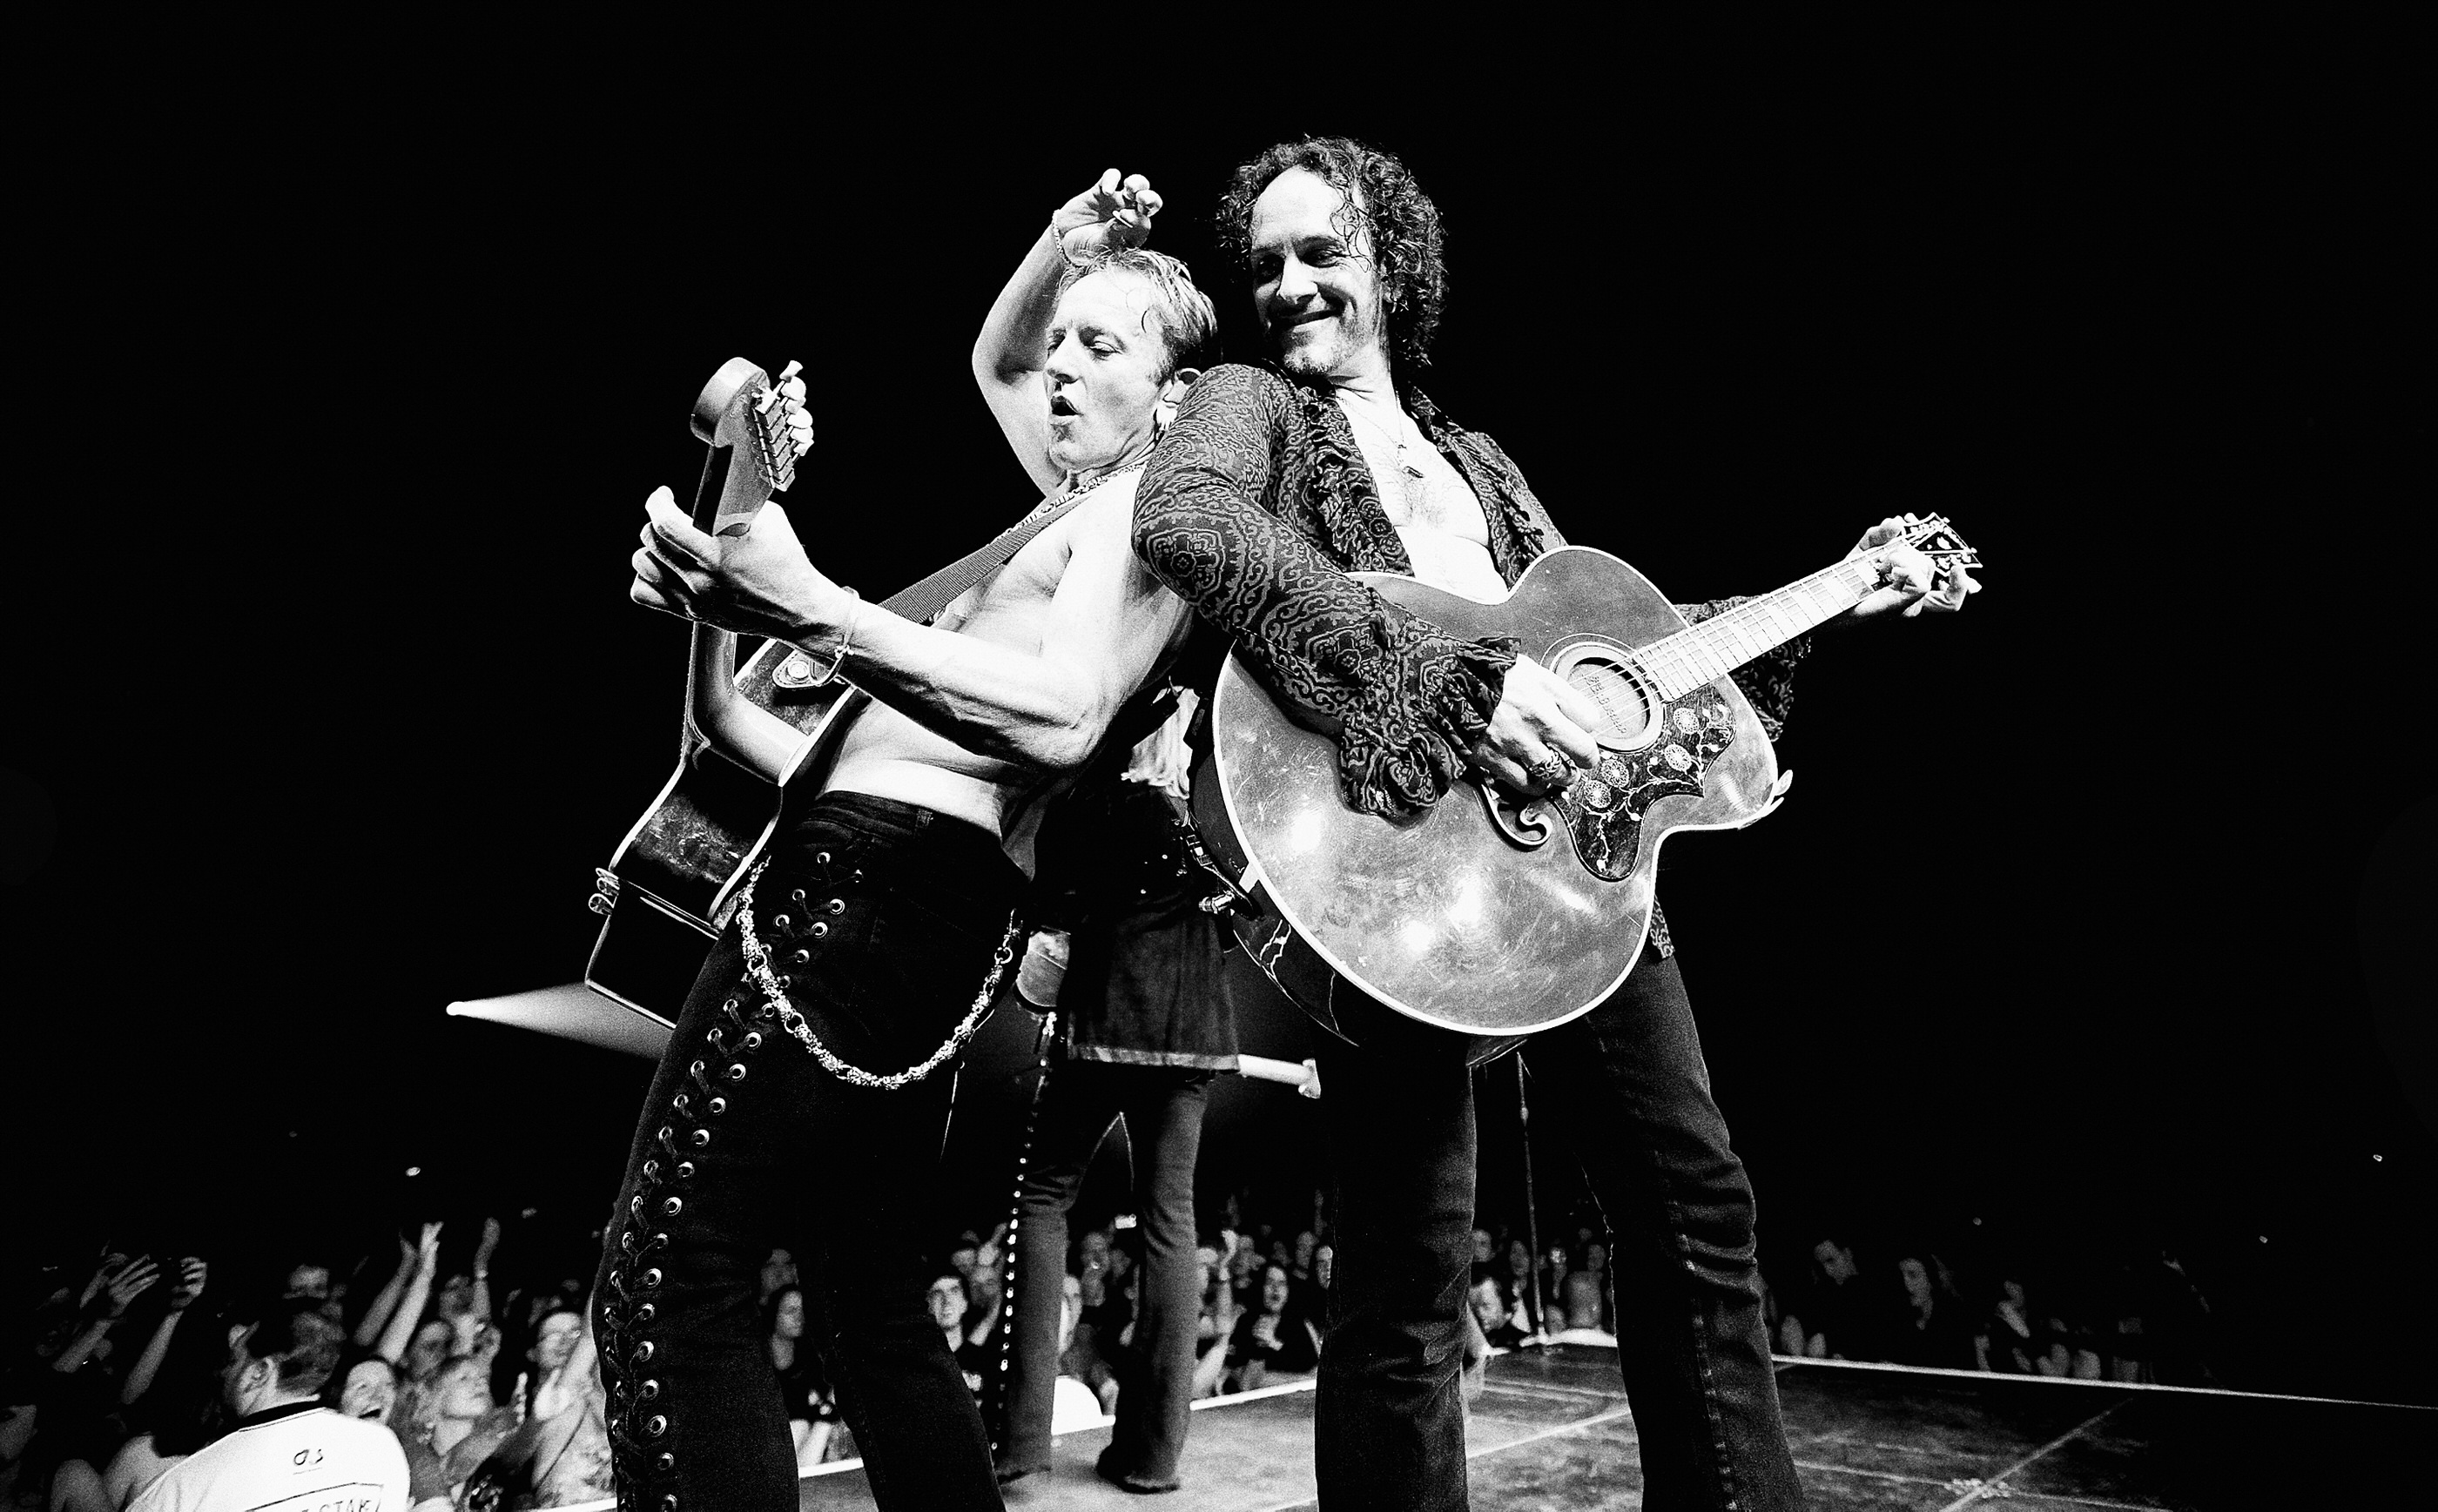 Vivian Campbell and Phil Collen  Def Leppard Glasgow 2008 by Ash